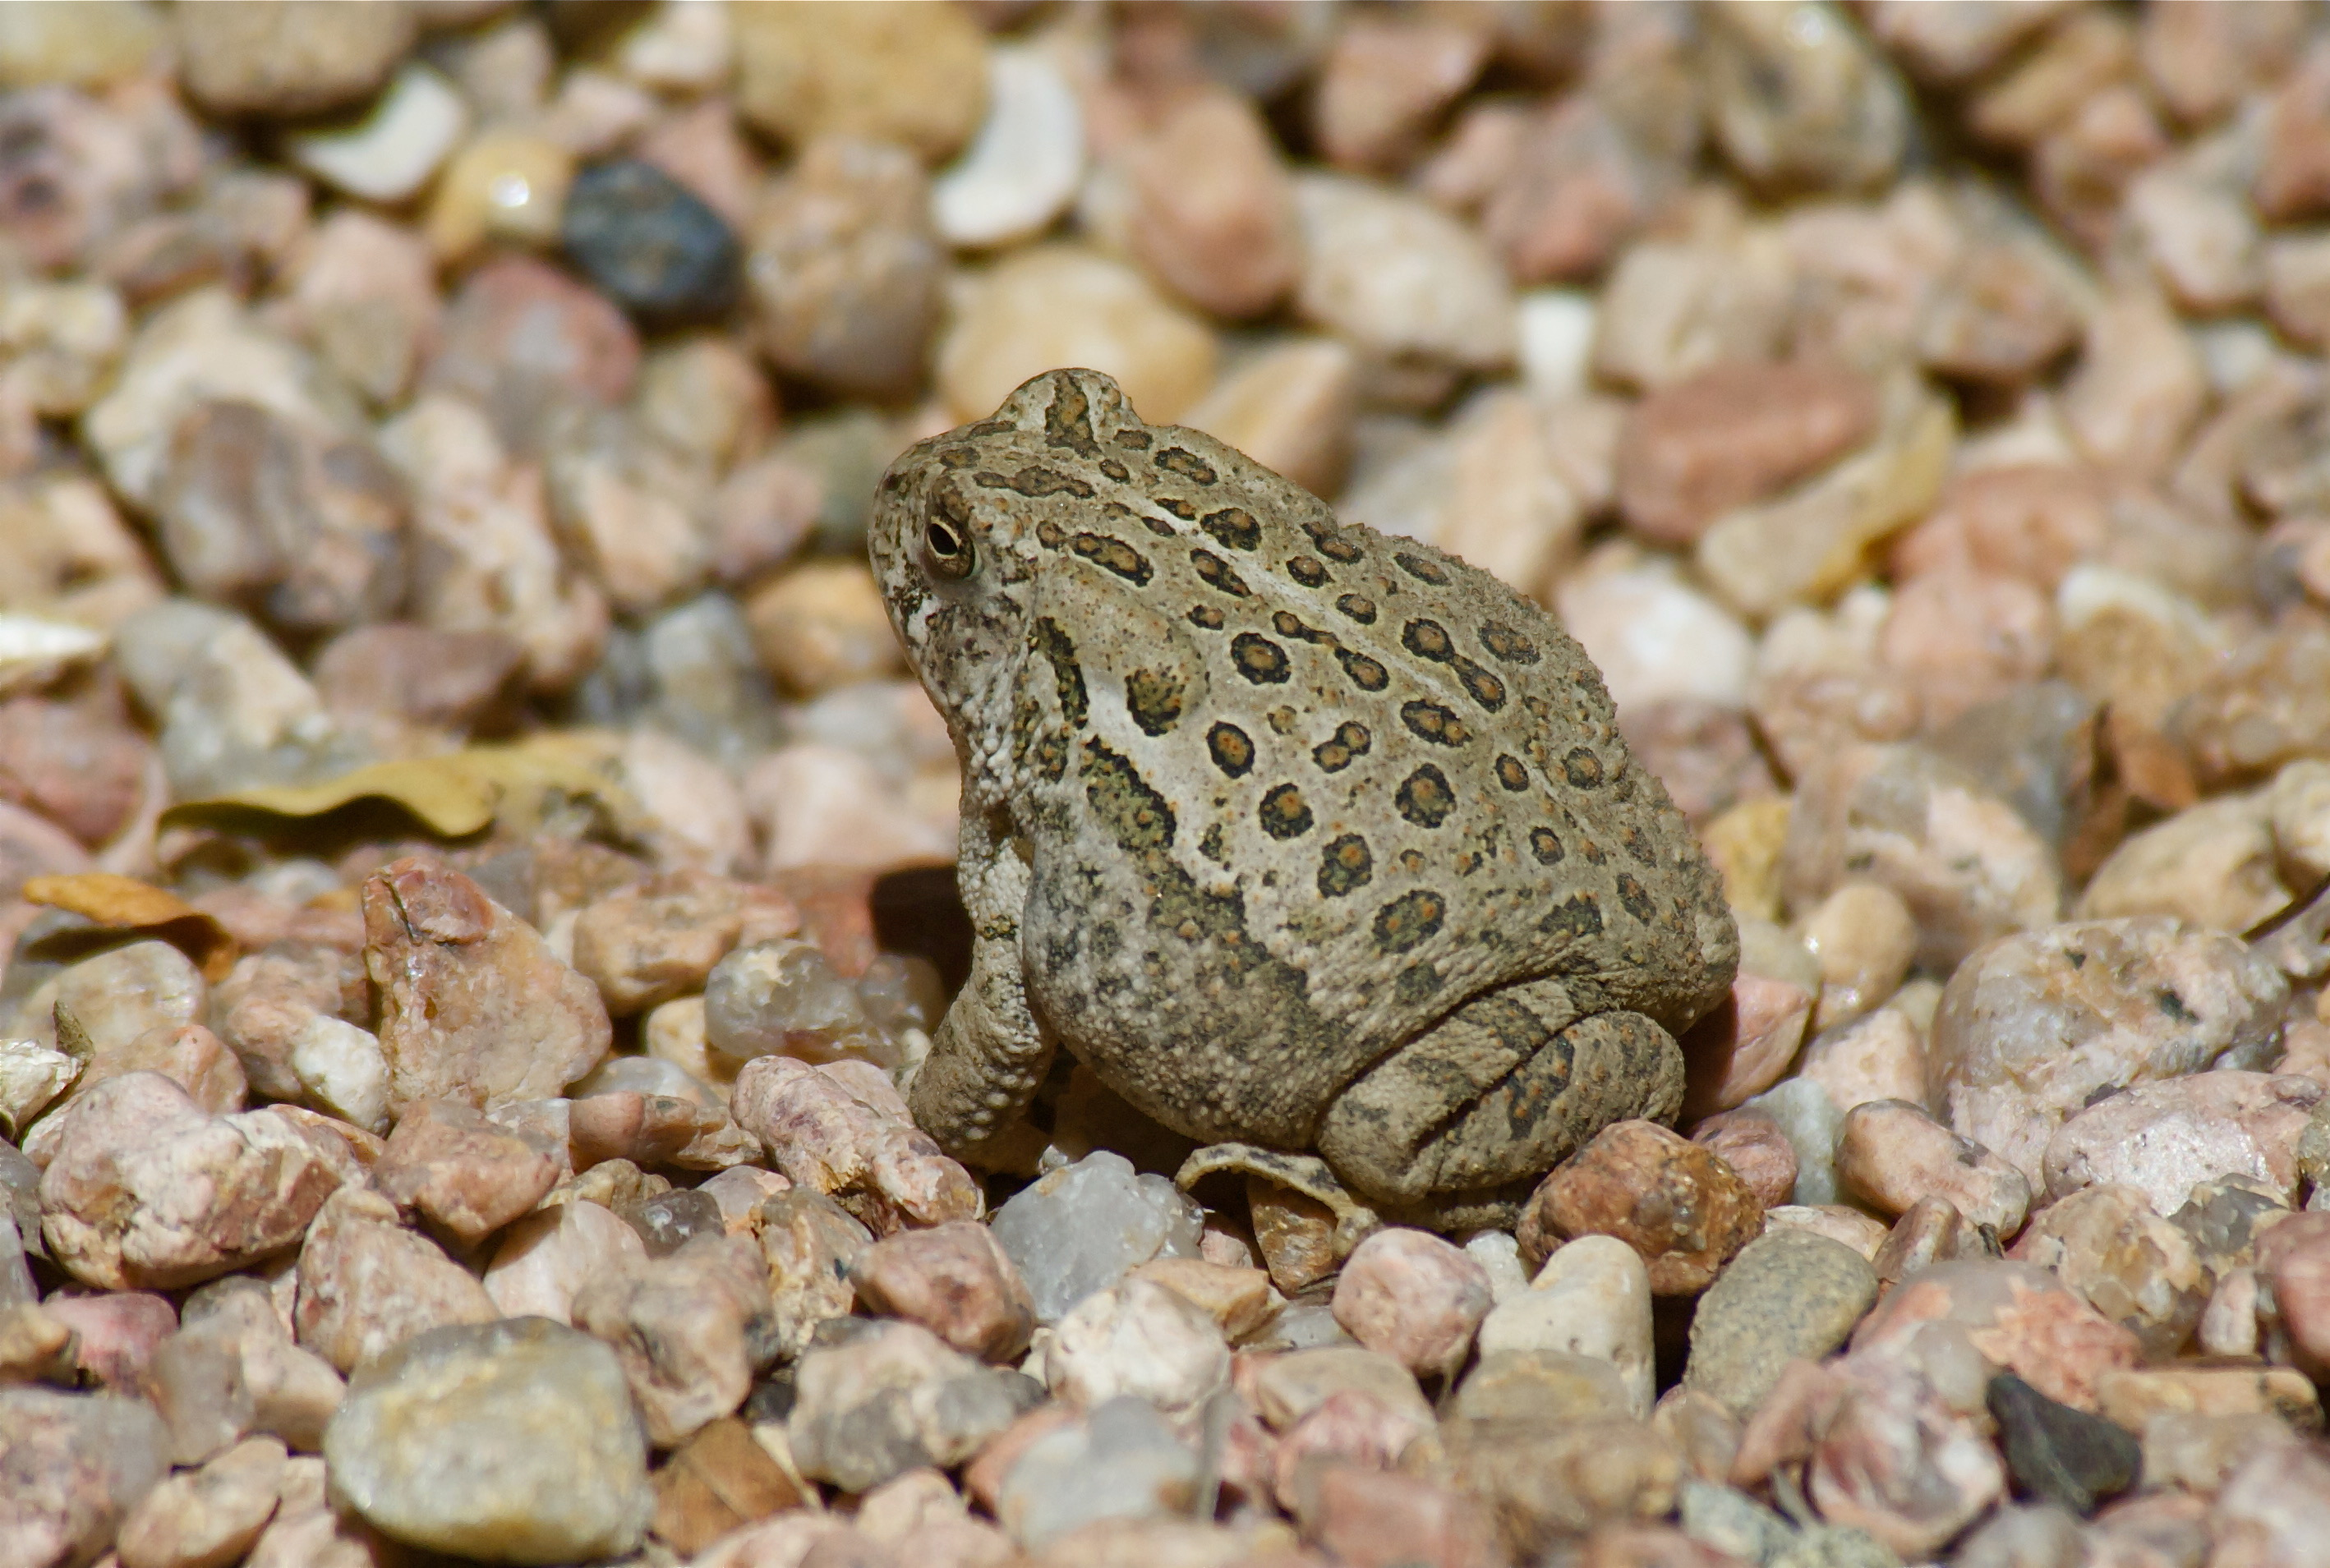 Toad at the River